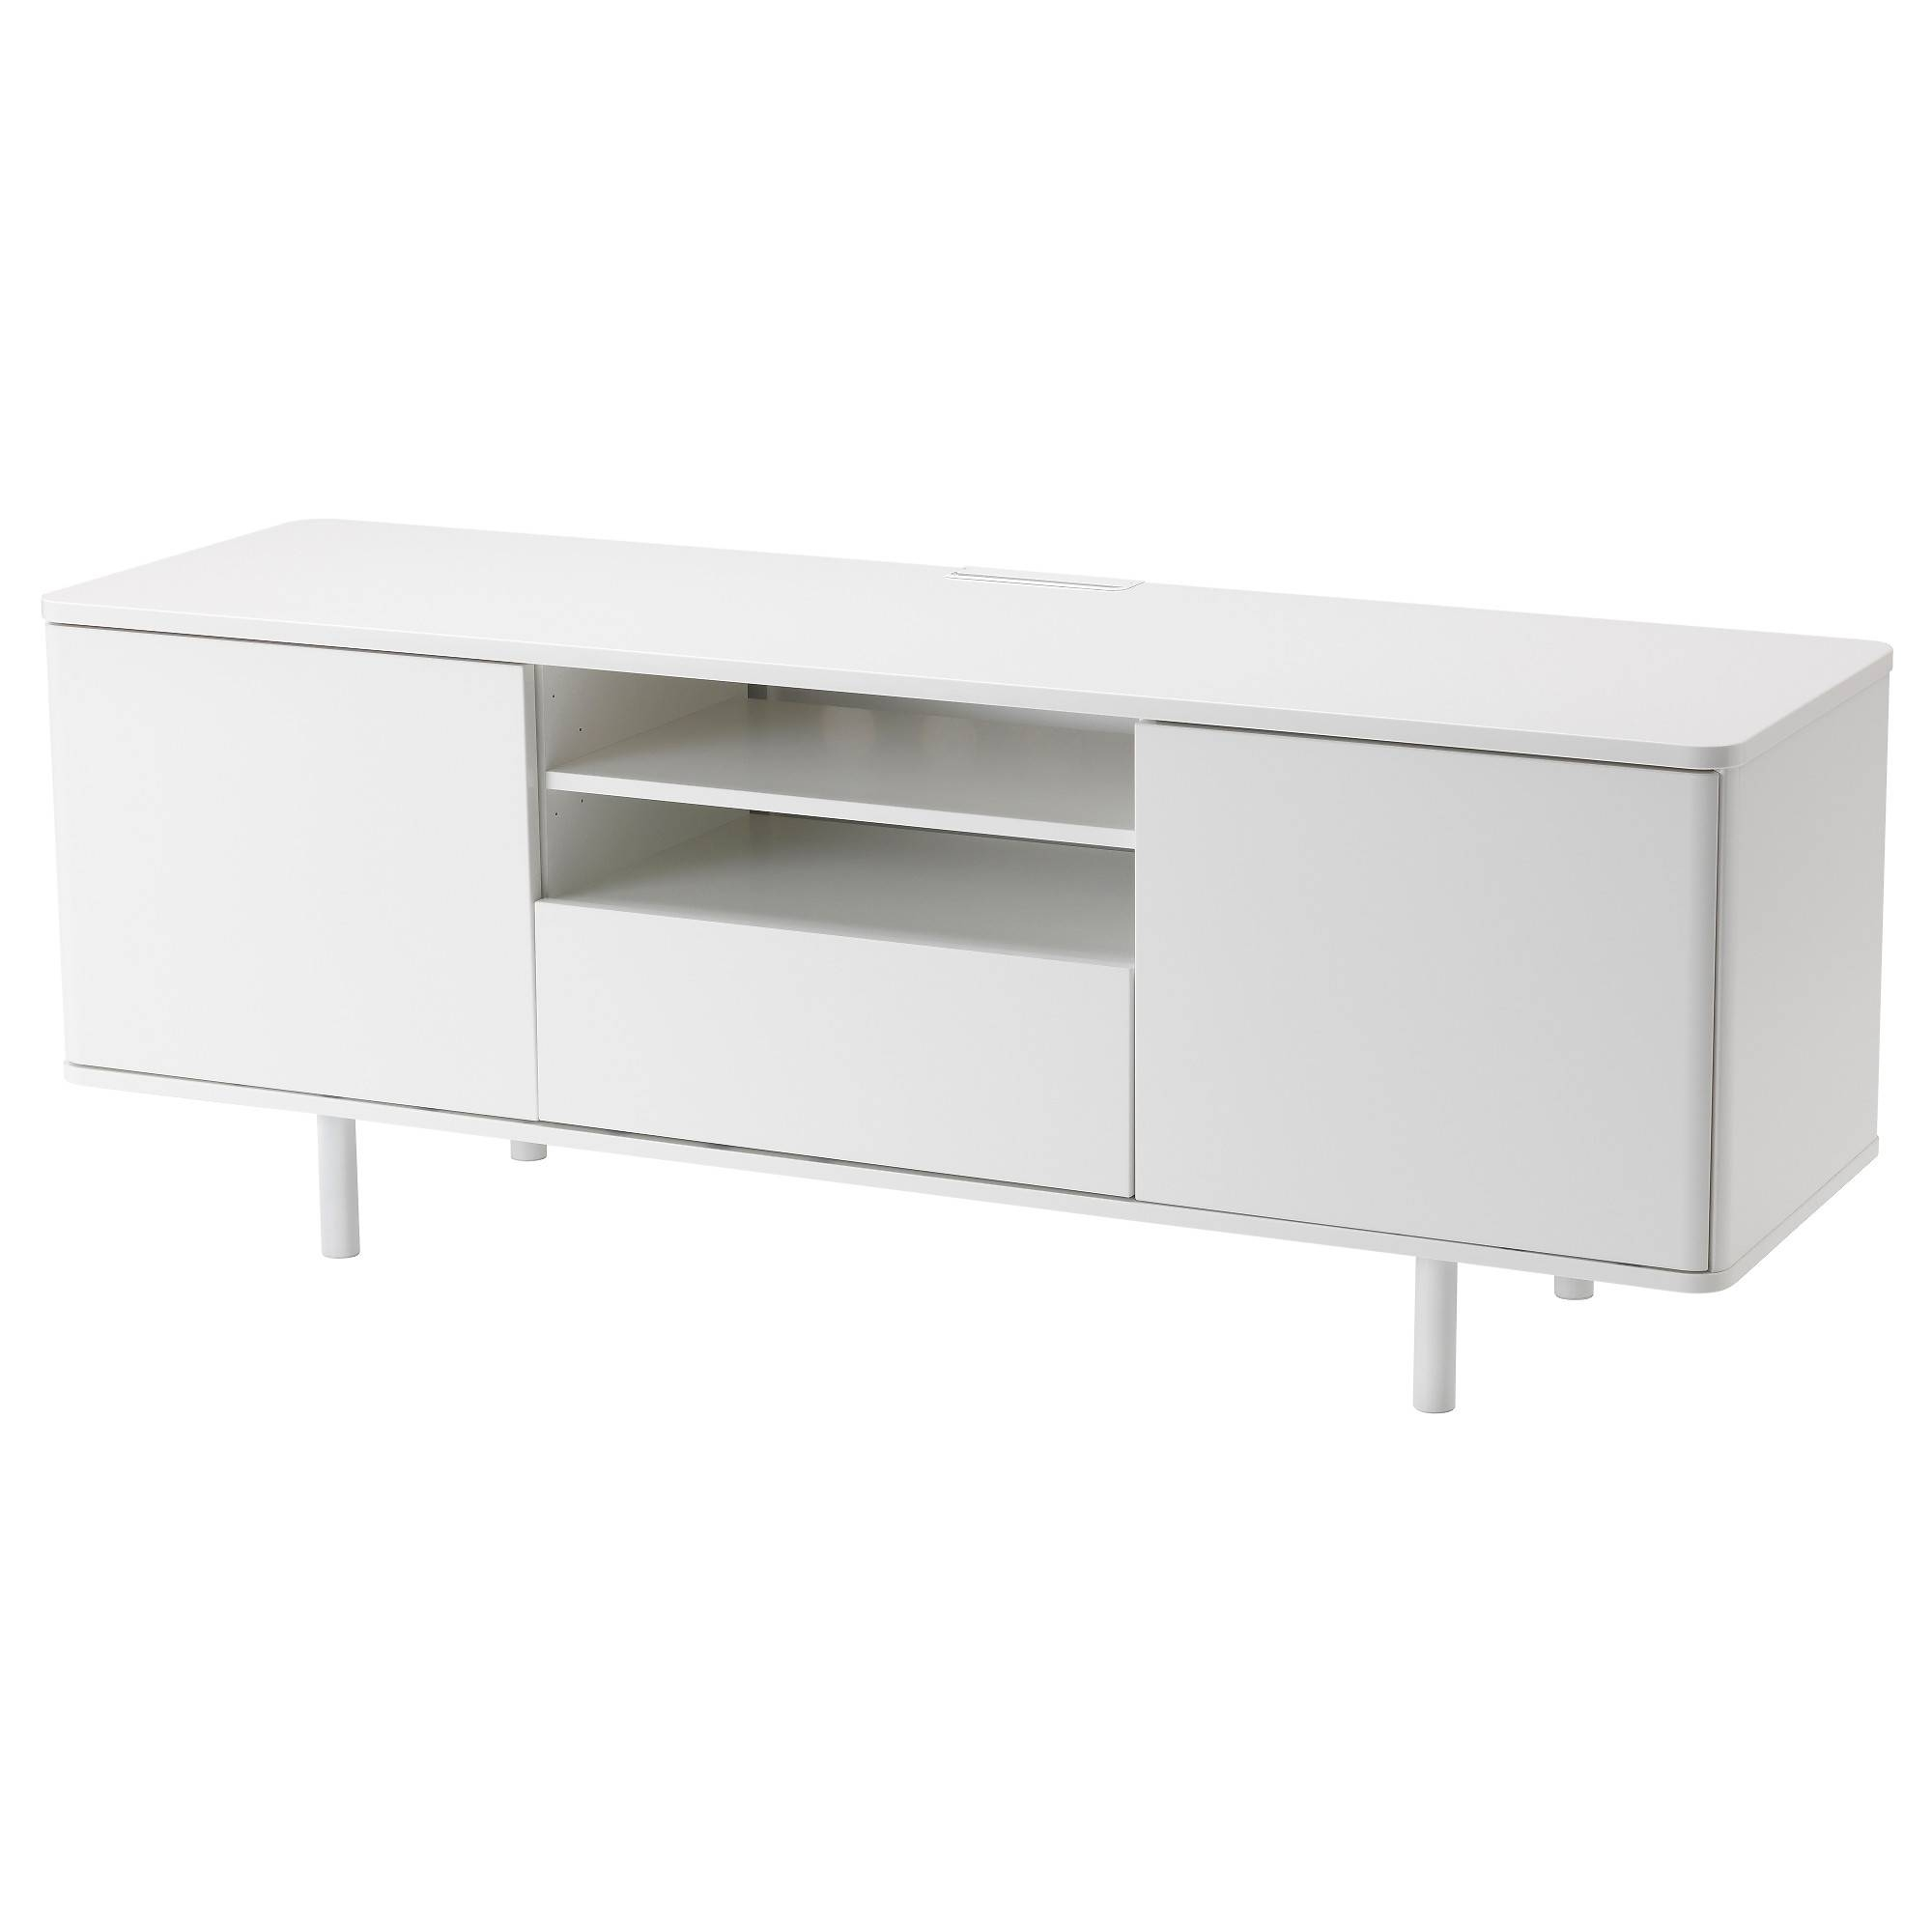 Tv Stands & Tv Units | Ikea throughout Corner Tv Unit White Gloss (Image 10 of 15)